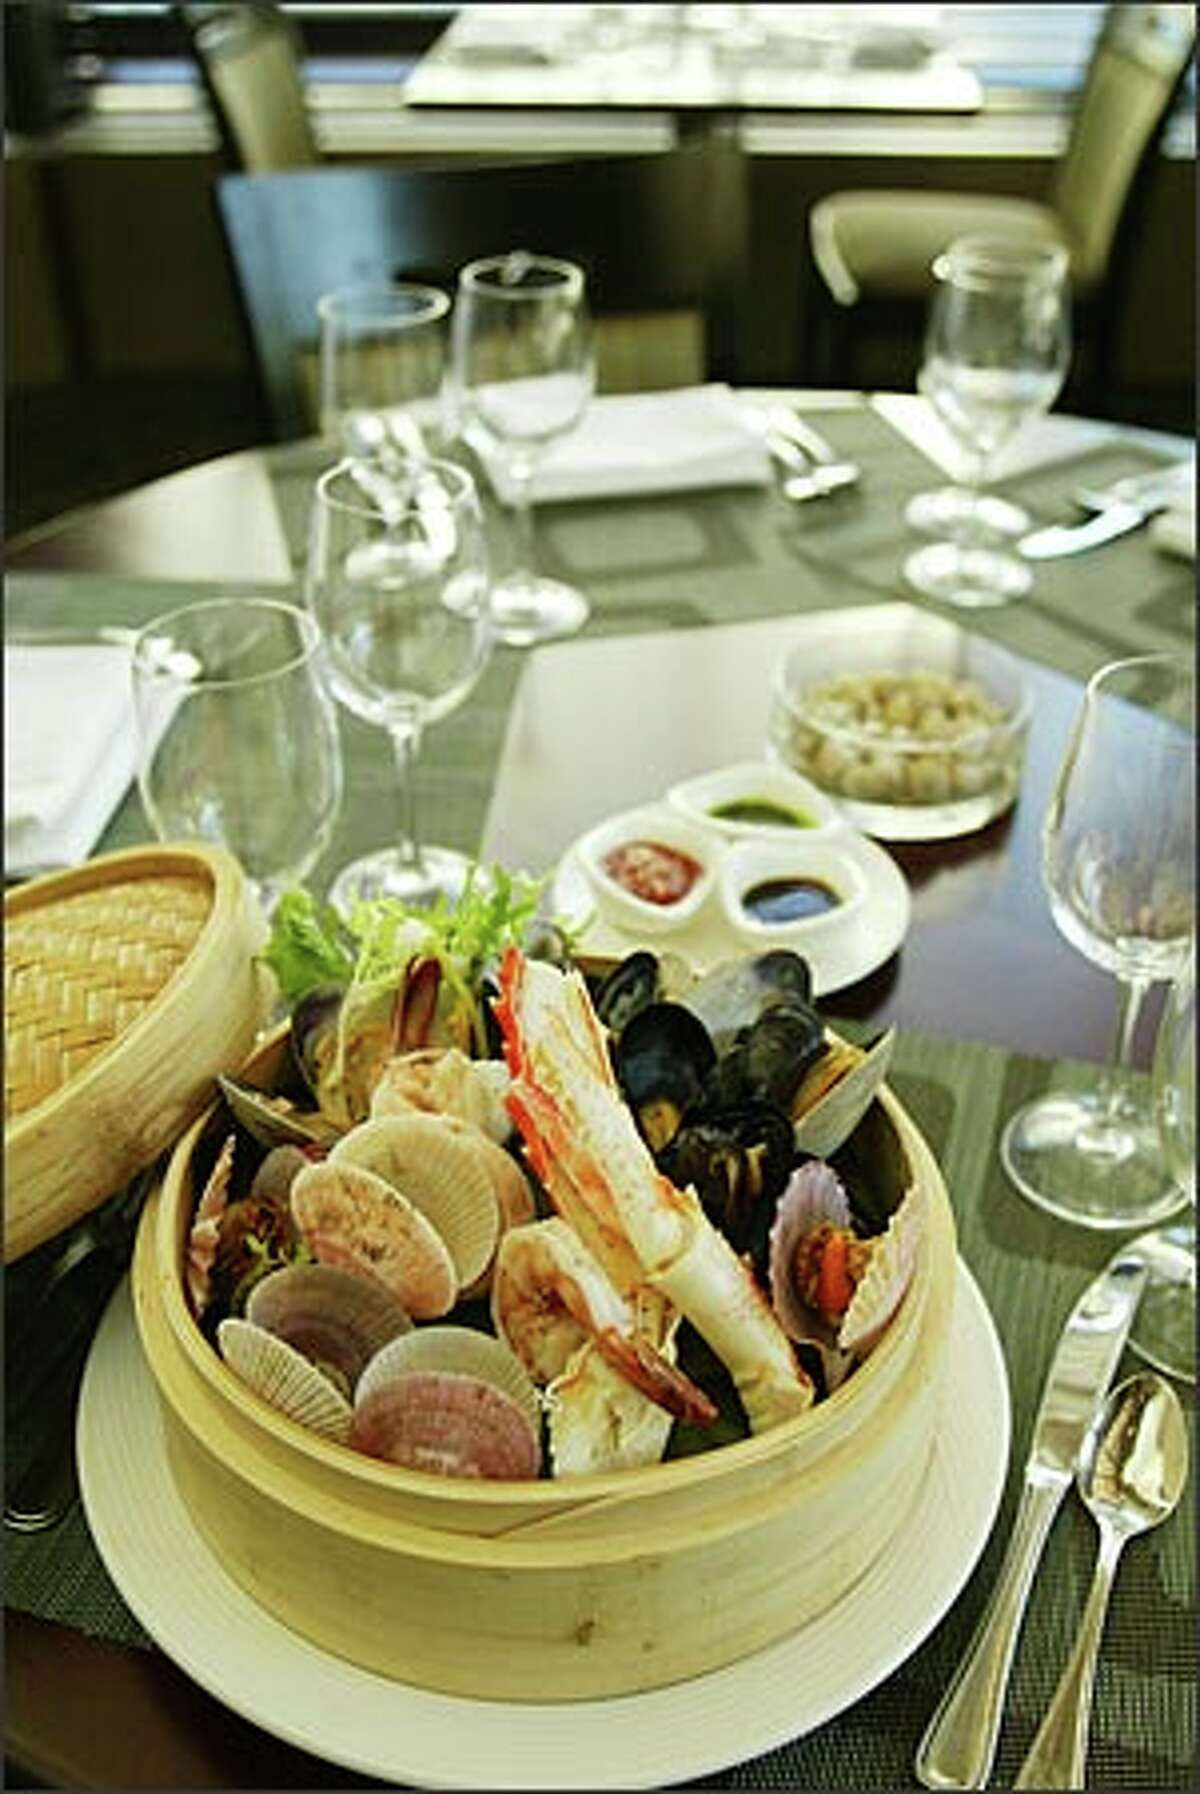 Visit Coldwater for the top neck clams, offered in several dishes, including this steamed basket of Northwest shellfish.